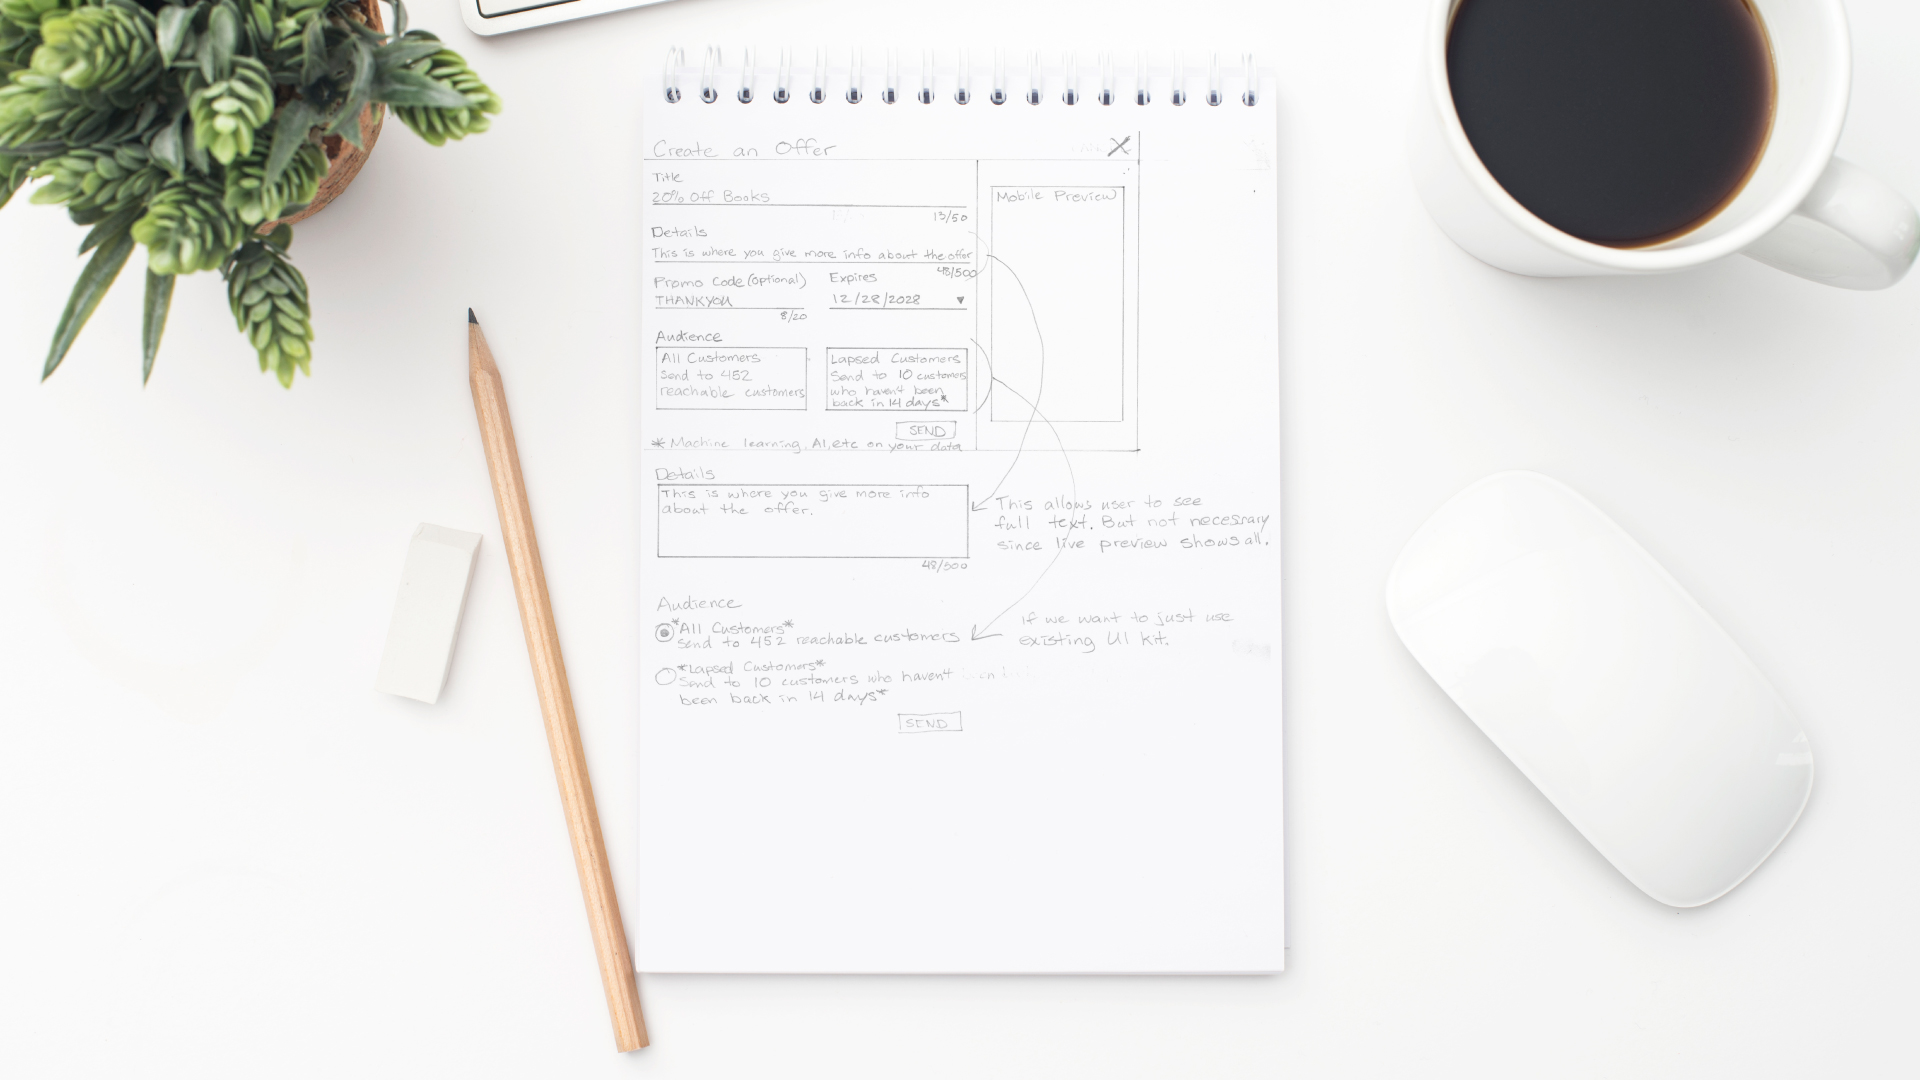 Wireframe Sketches of the Create an Offer Experience